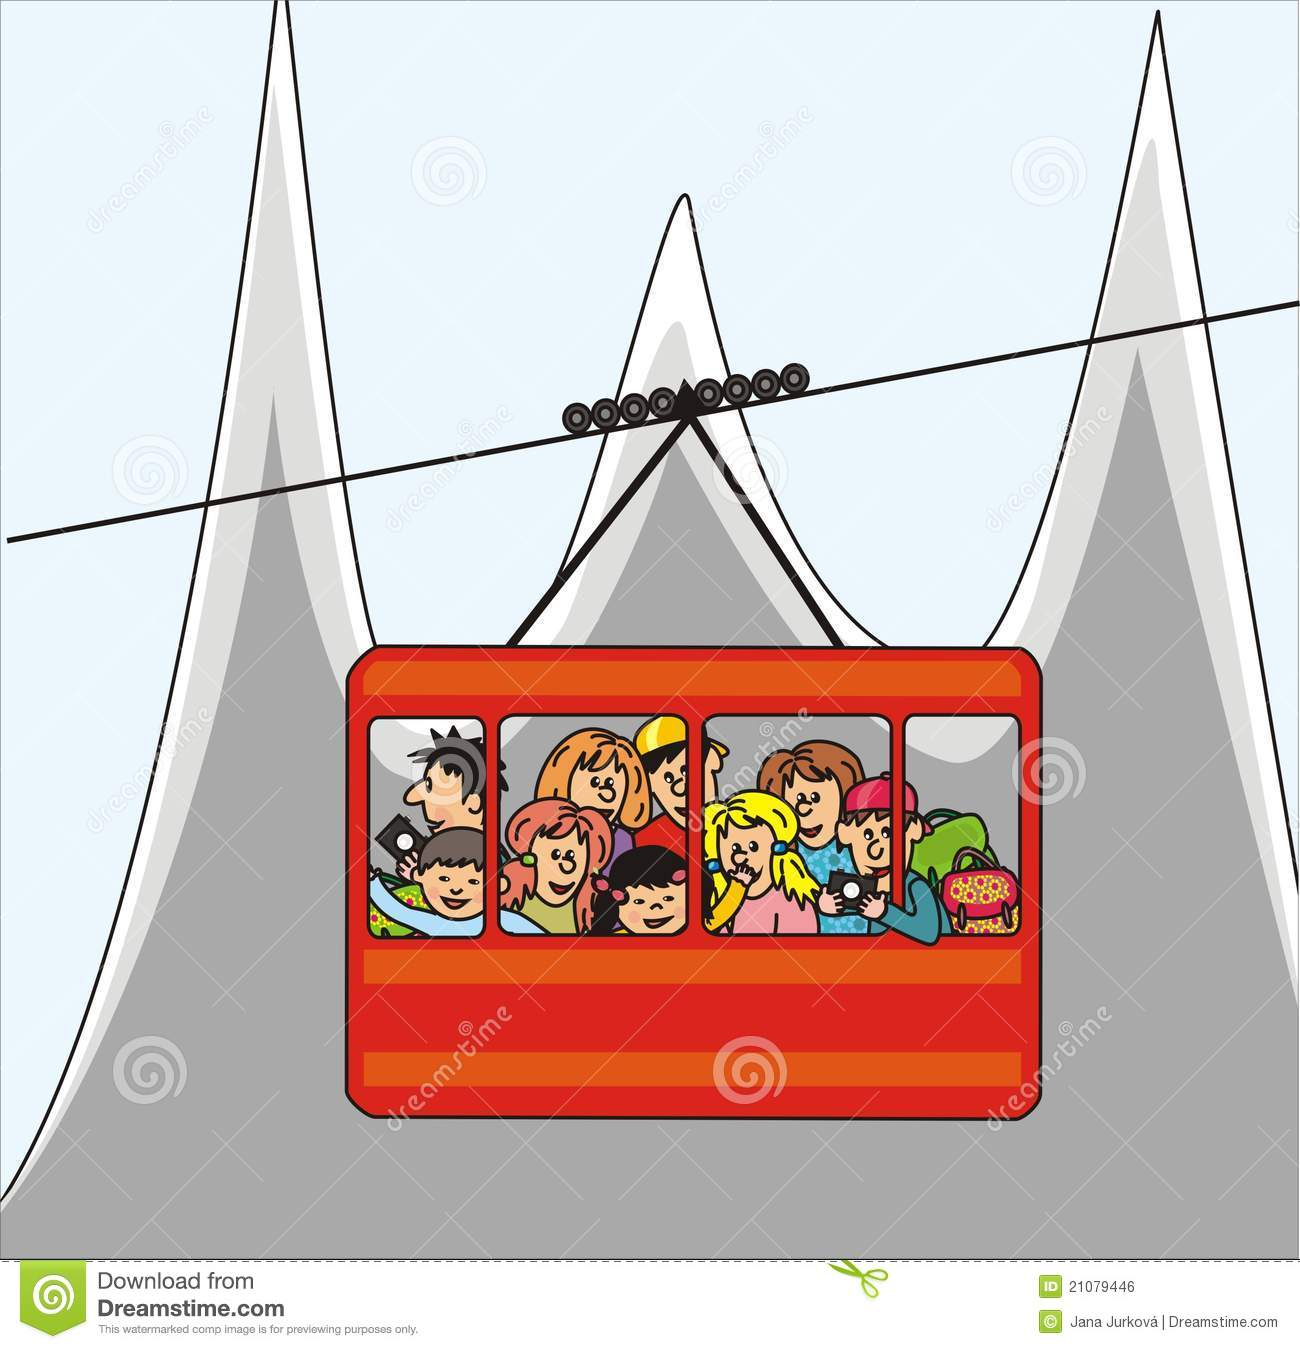 Todd Clipart 20 Fee Cliparts Download Imagenes: Cableway Clipart 20 Free Cliparts